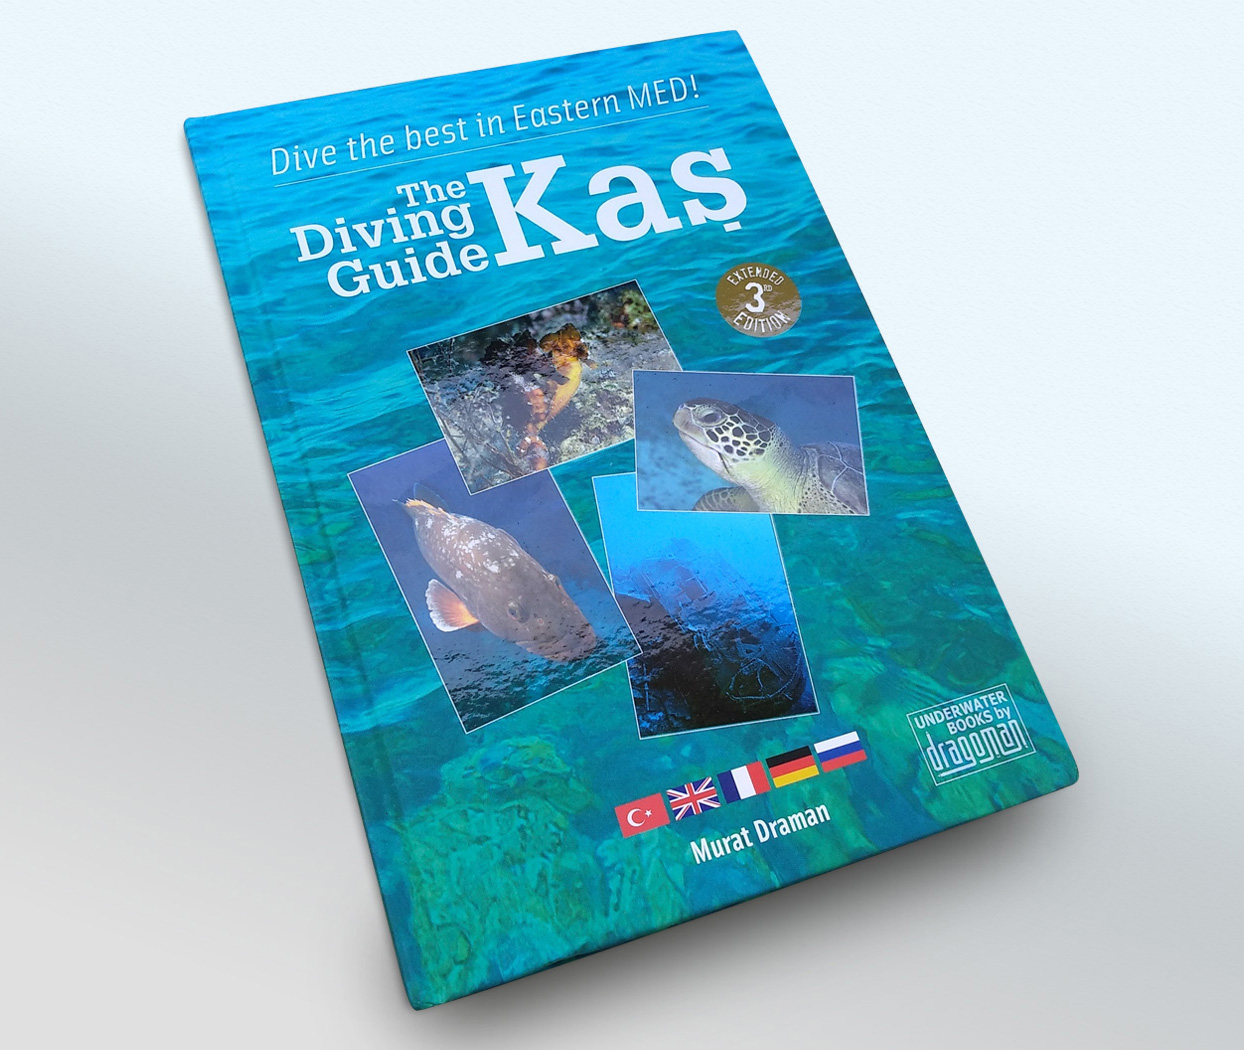 The Diving Guide Kaş - 3rd Edition